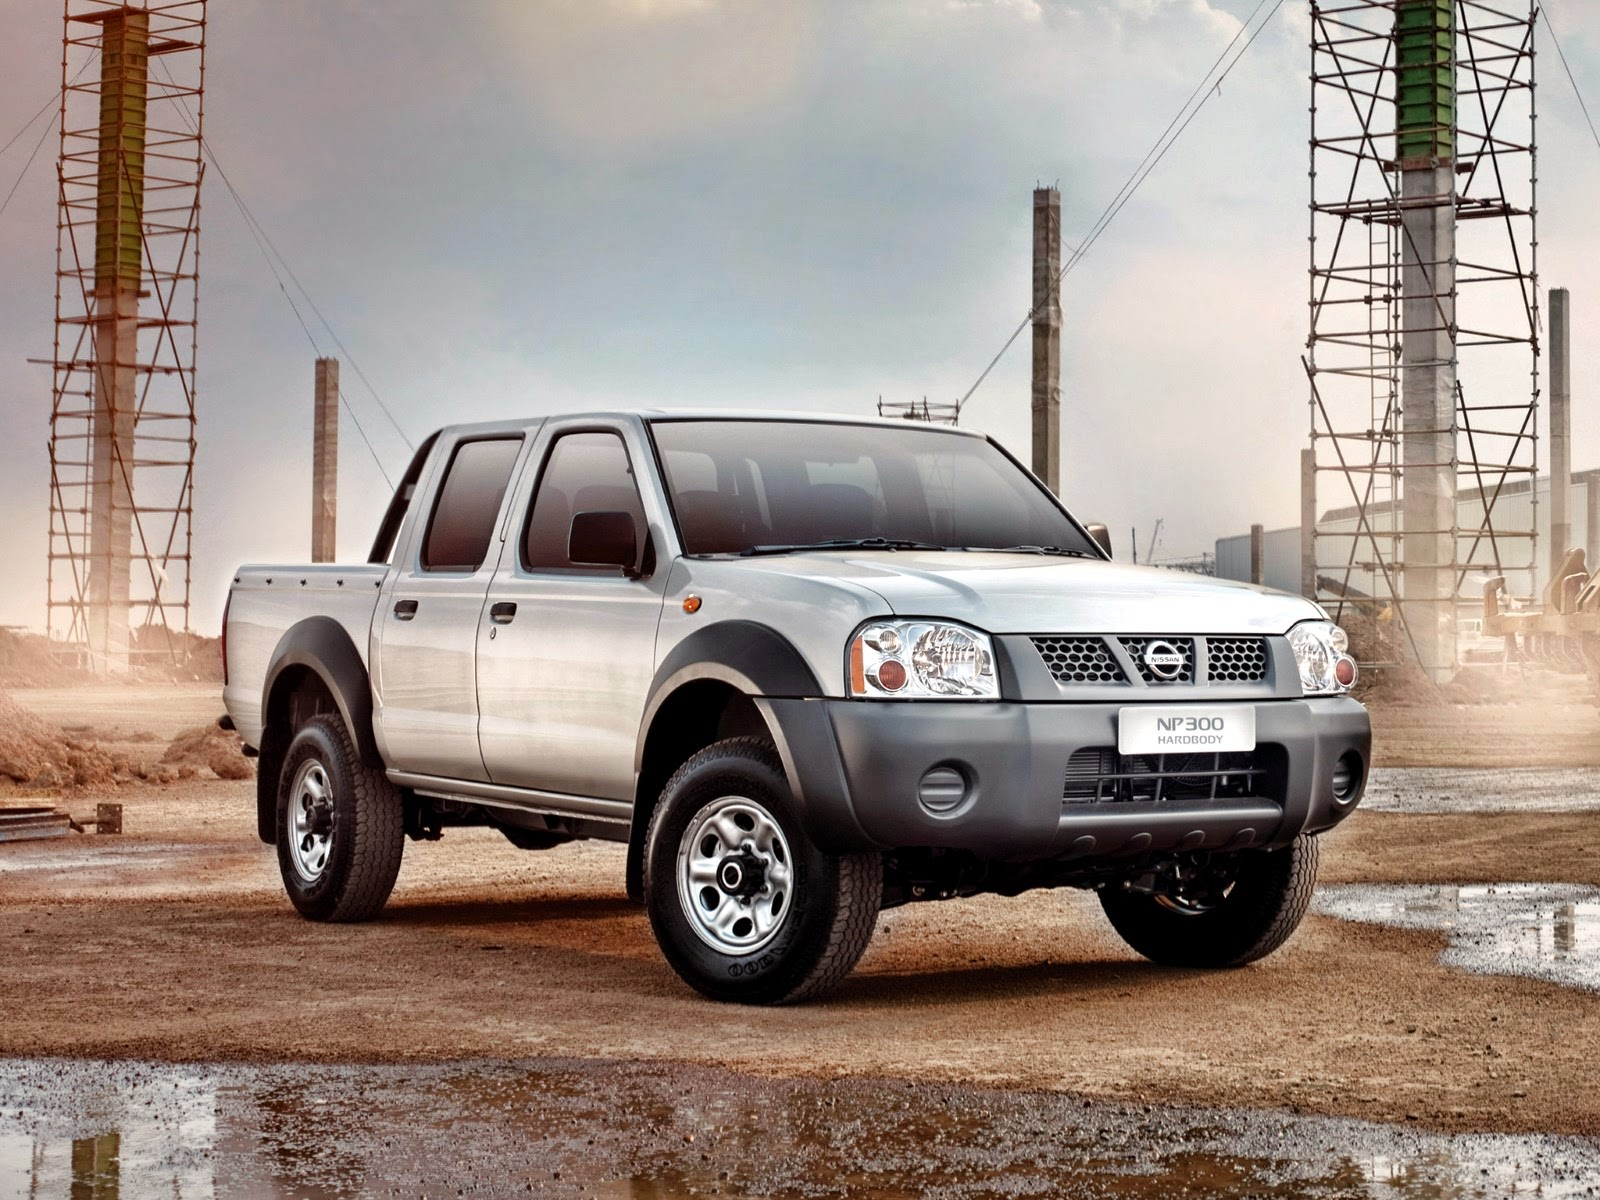 76 Nissan NP300 Hardbody series – The dependable pick-up